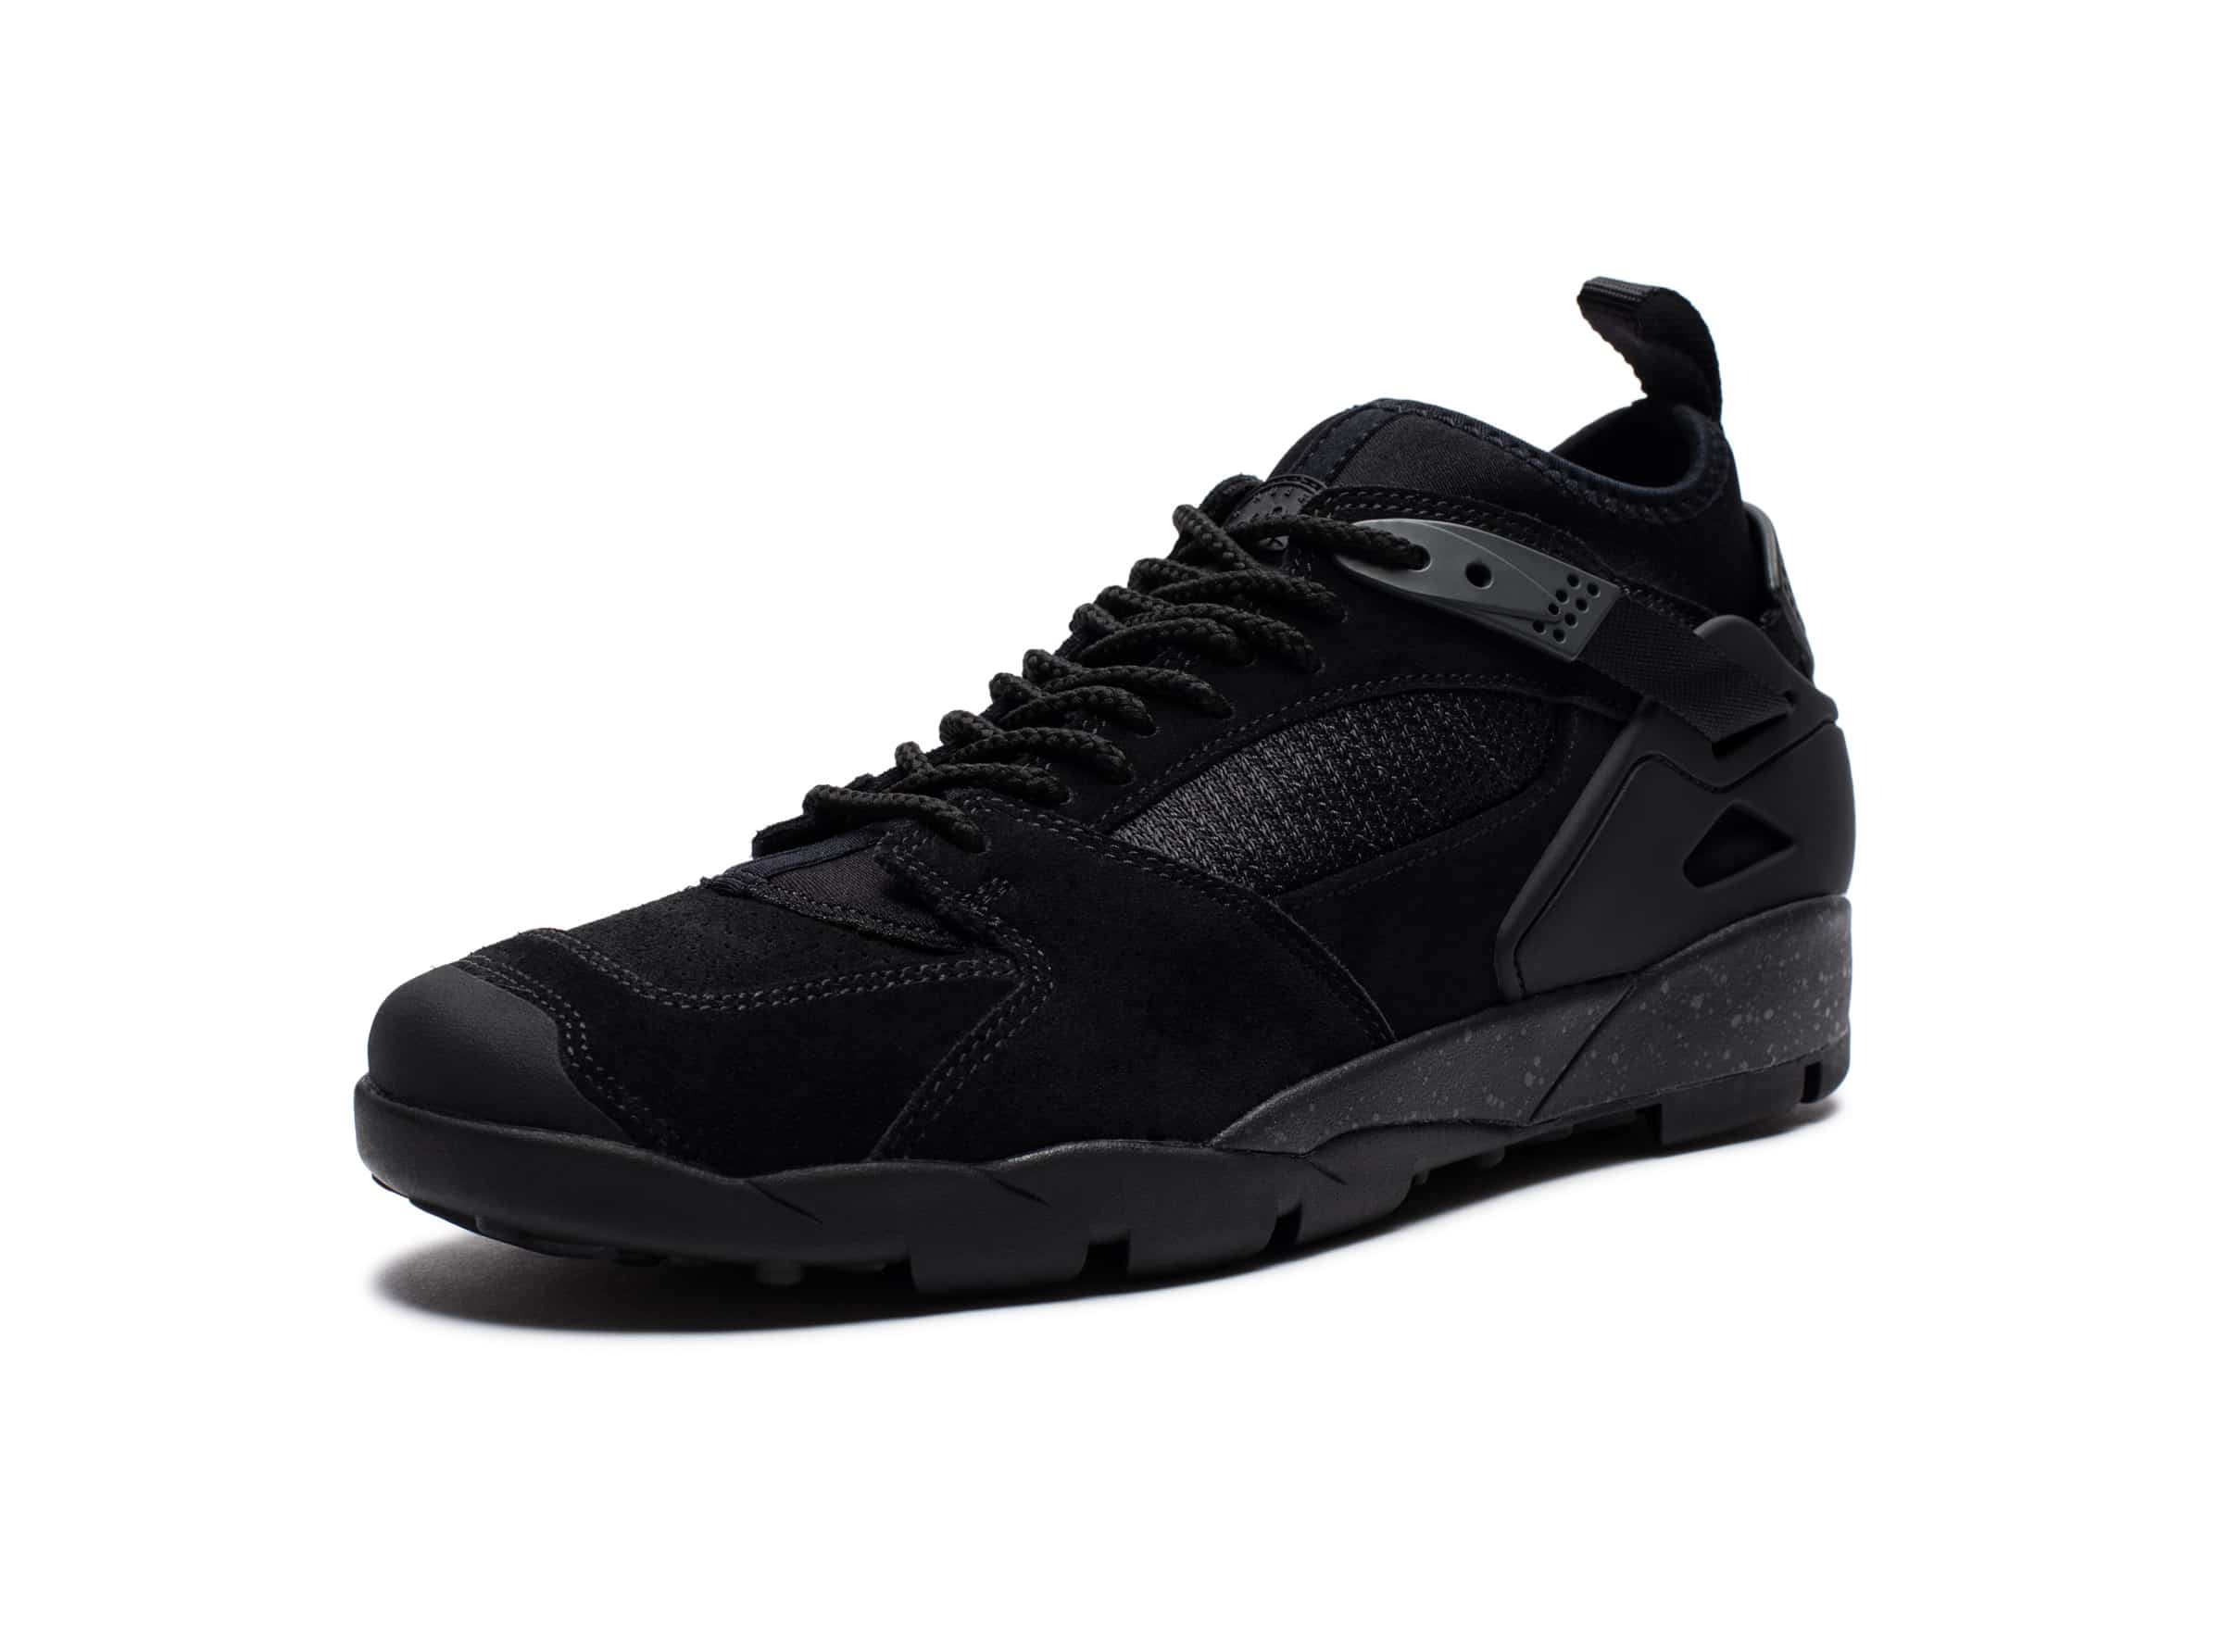 c4dd85a39 AIR REVADERCHI - BLACK/ANTHRACITE   Undefeated